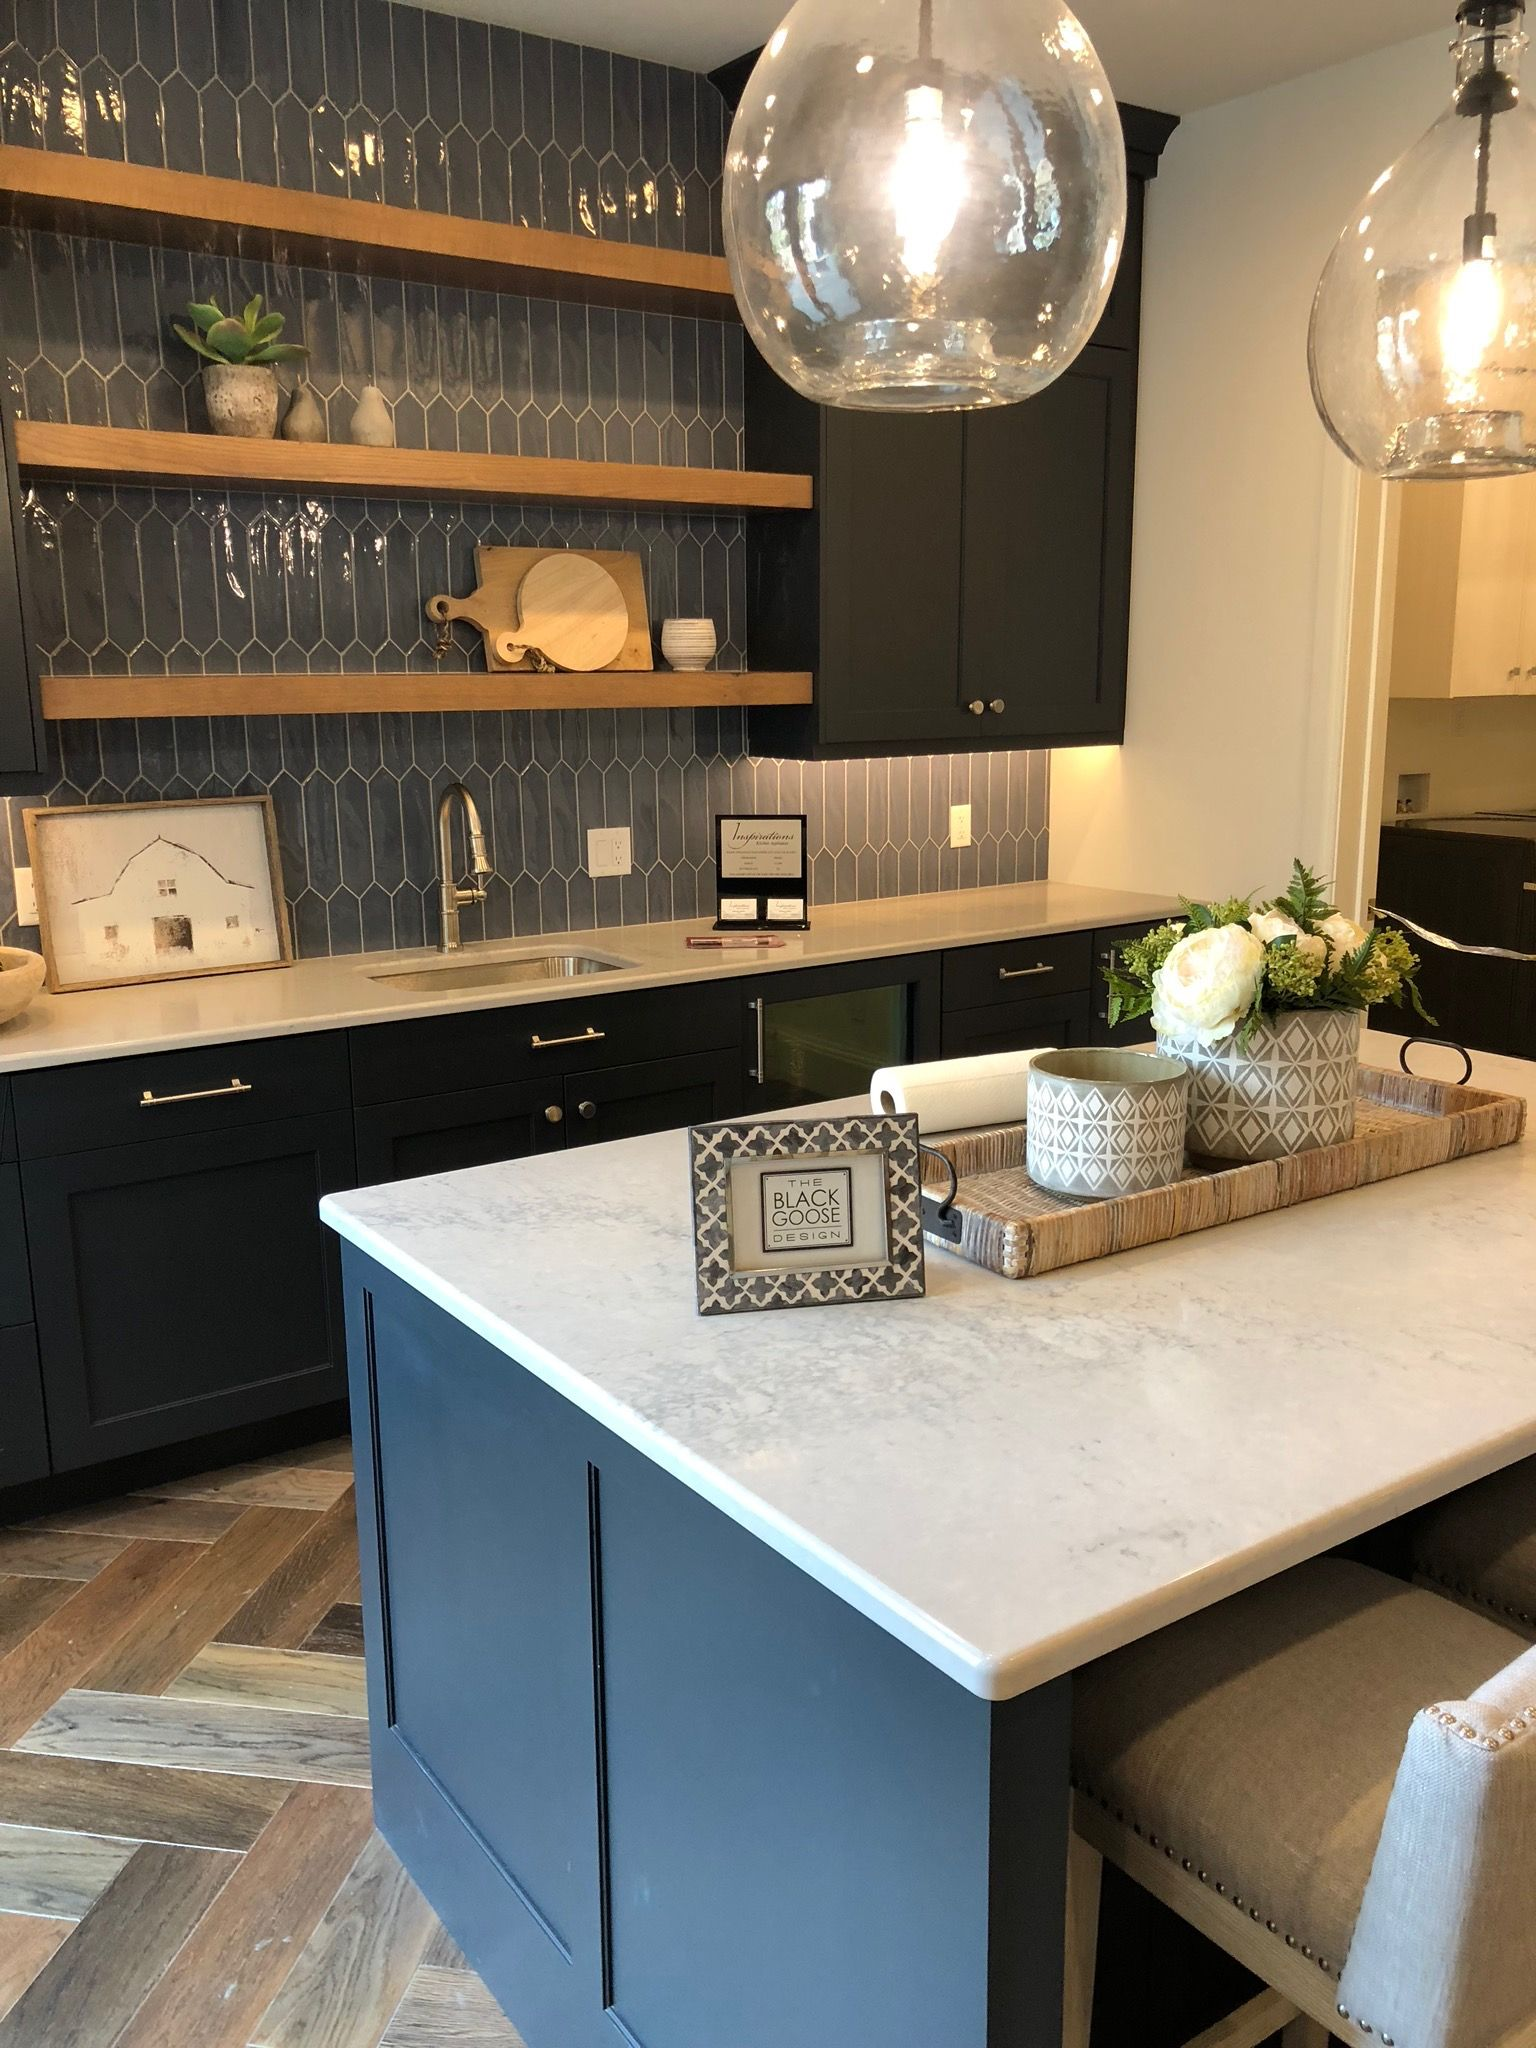 Pin by Sarah Bevan on New Home kitchen in 2020 Home